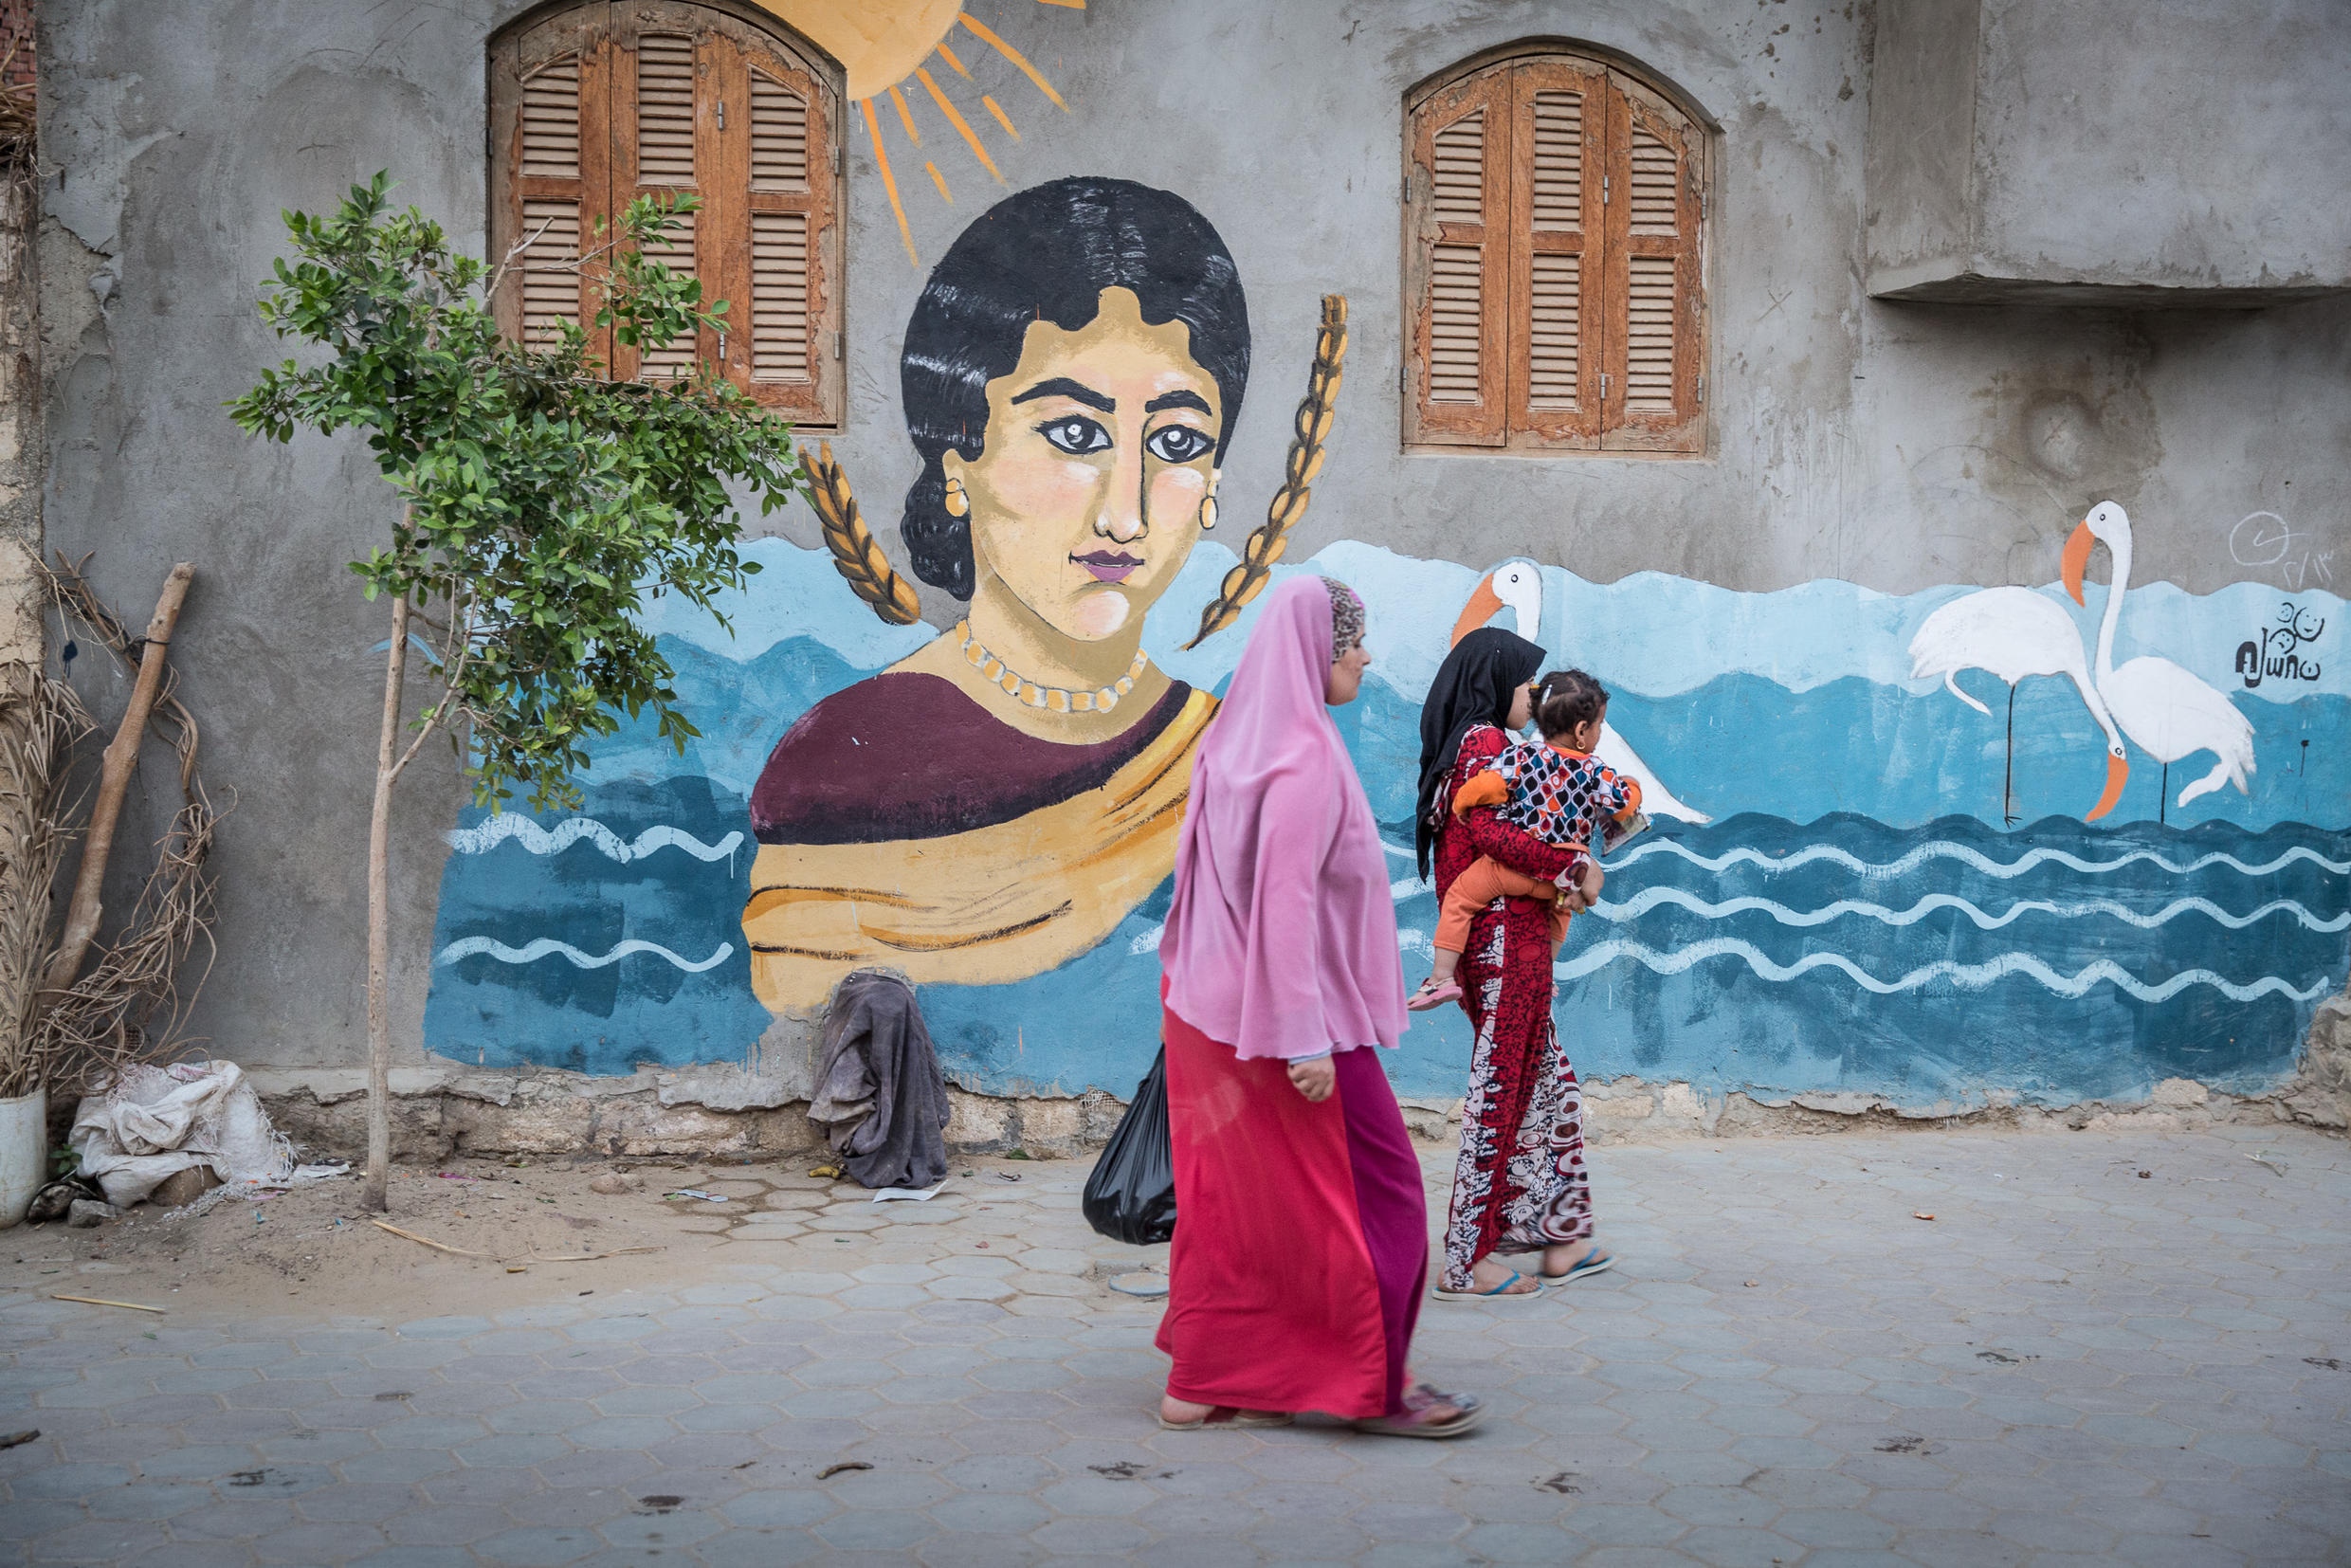 Wall paintings throughout the village of Tunis, Egypt